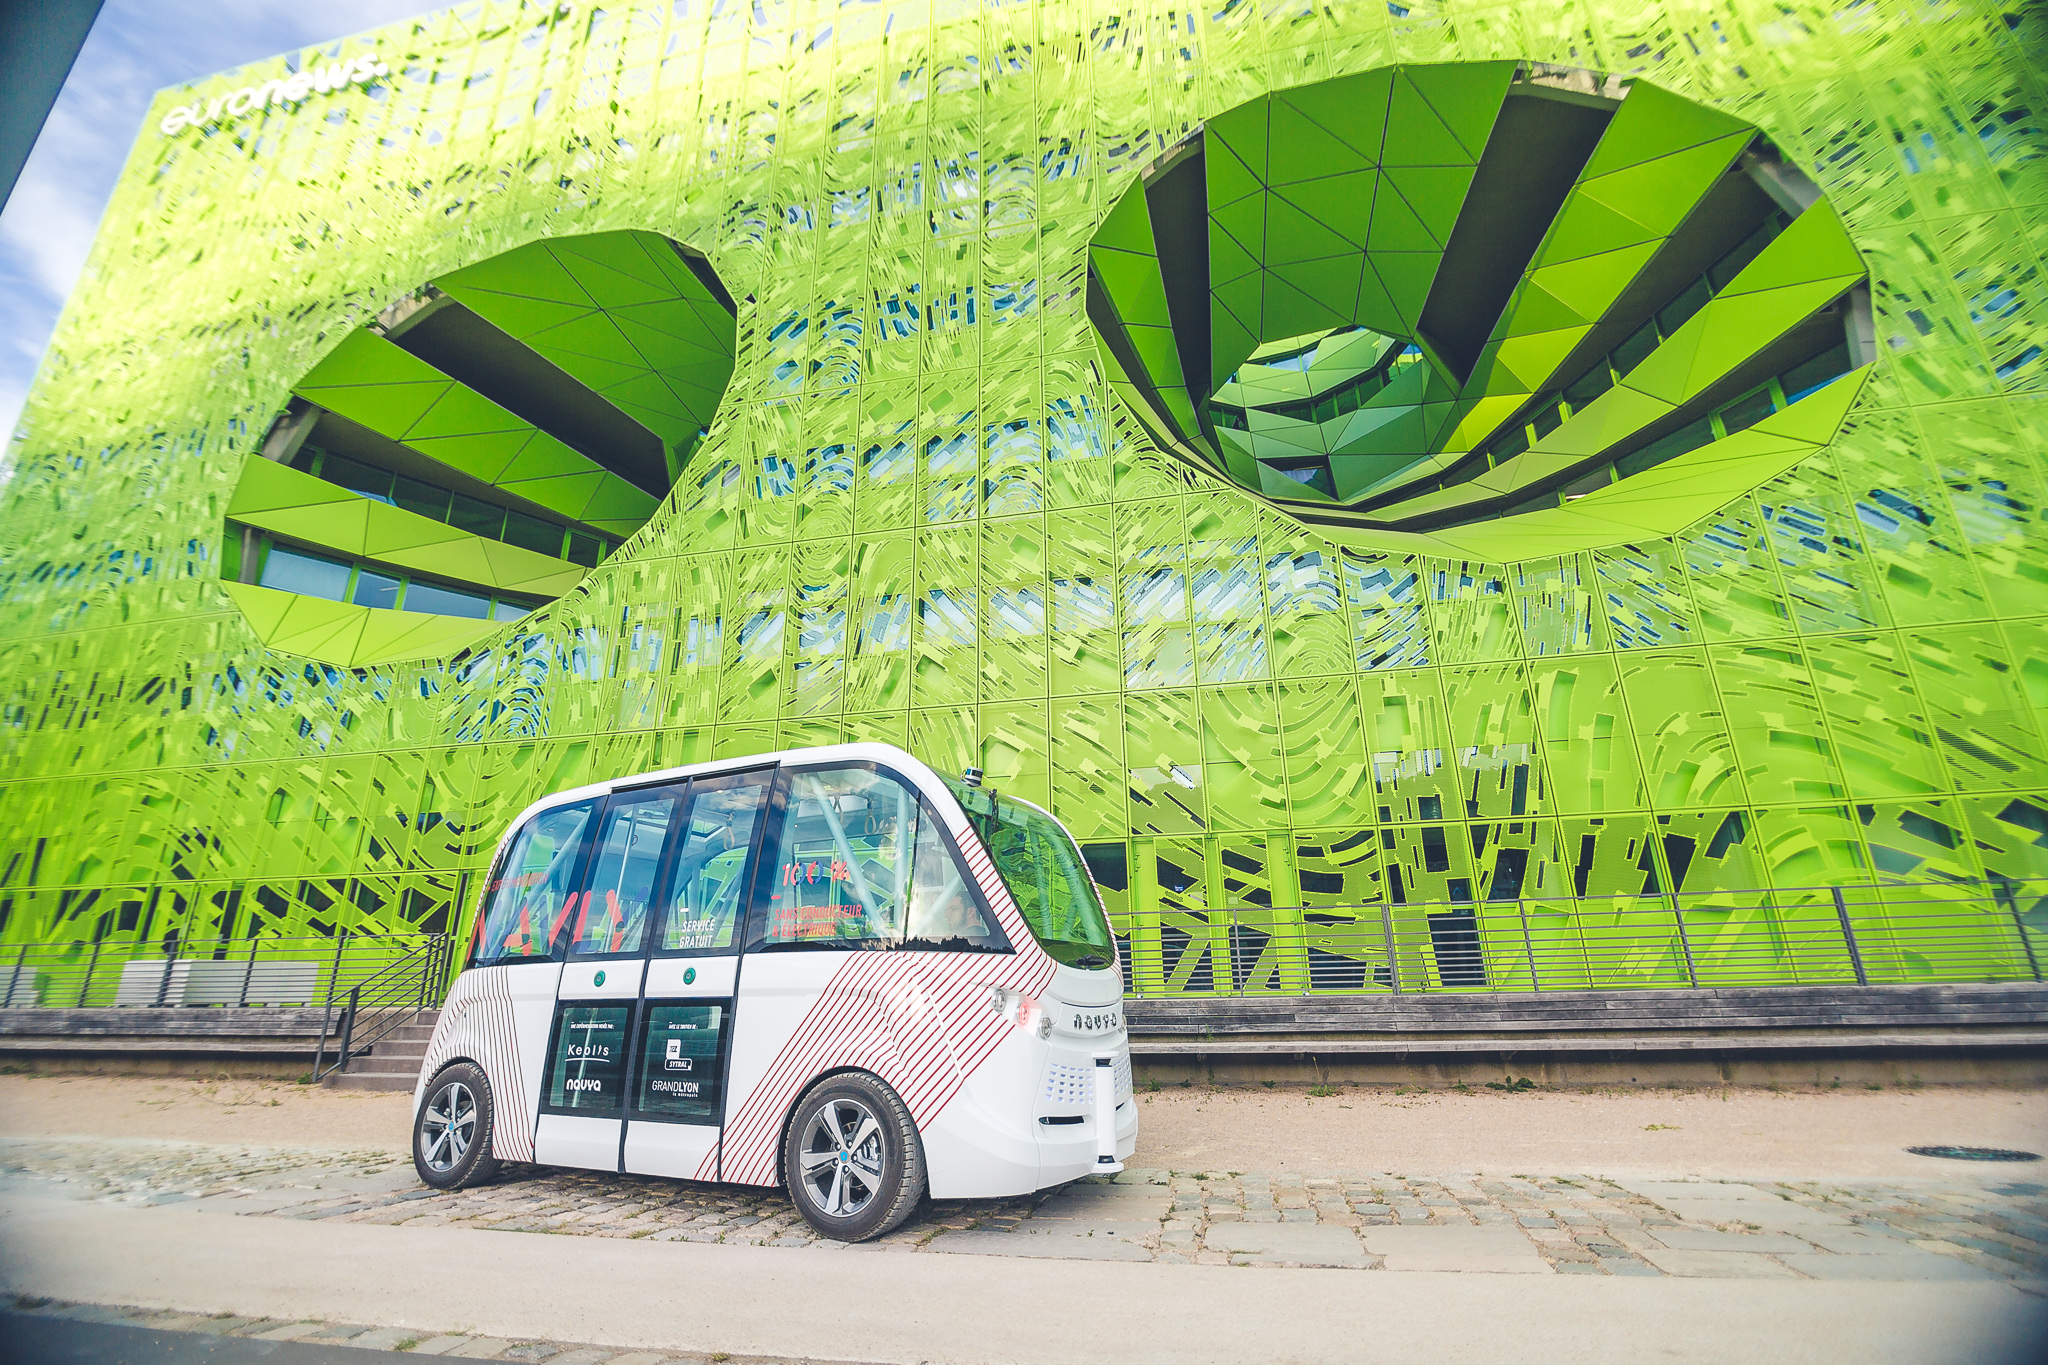 Las Vegas is testing autonomous shuttles this week